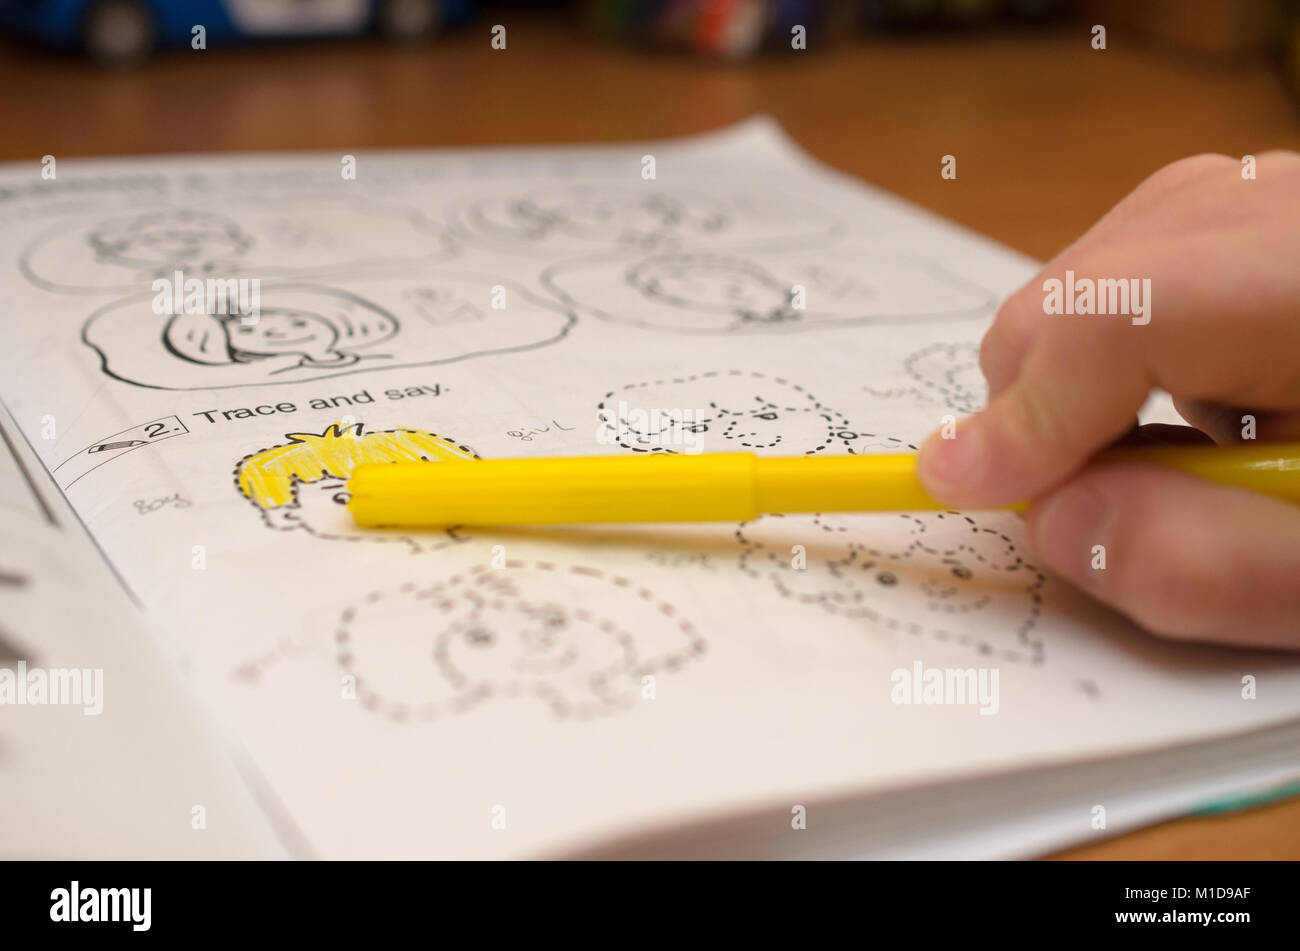 A child's hand writes and displays English letters in a notebook and alphabet with a pencil and felt-tip pen. - Stock Image